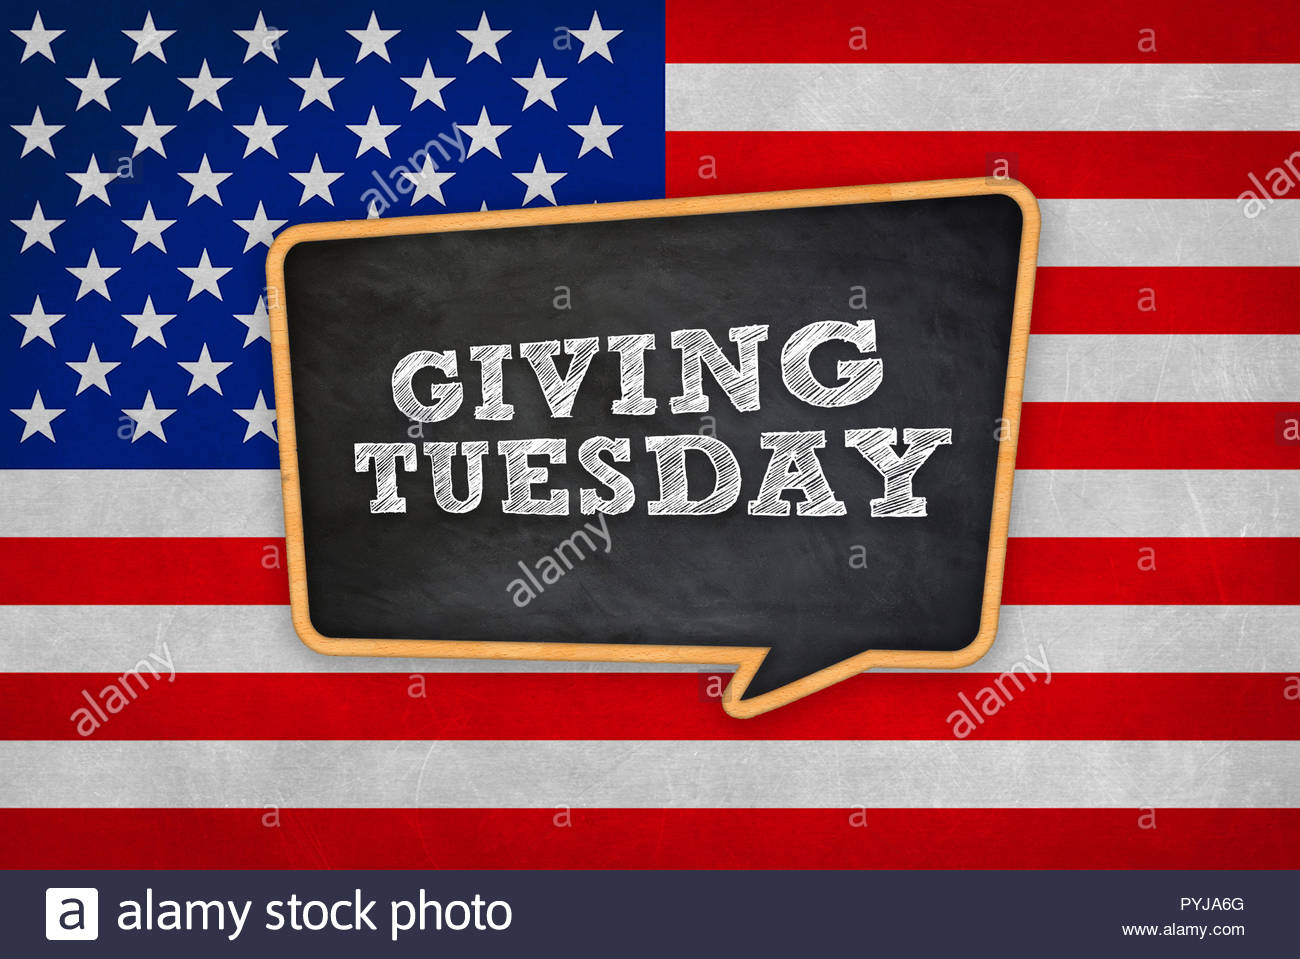 Giving Tuesday - Stock Image